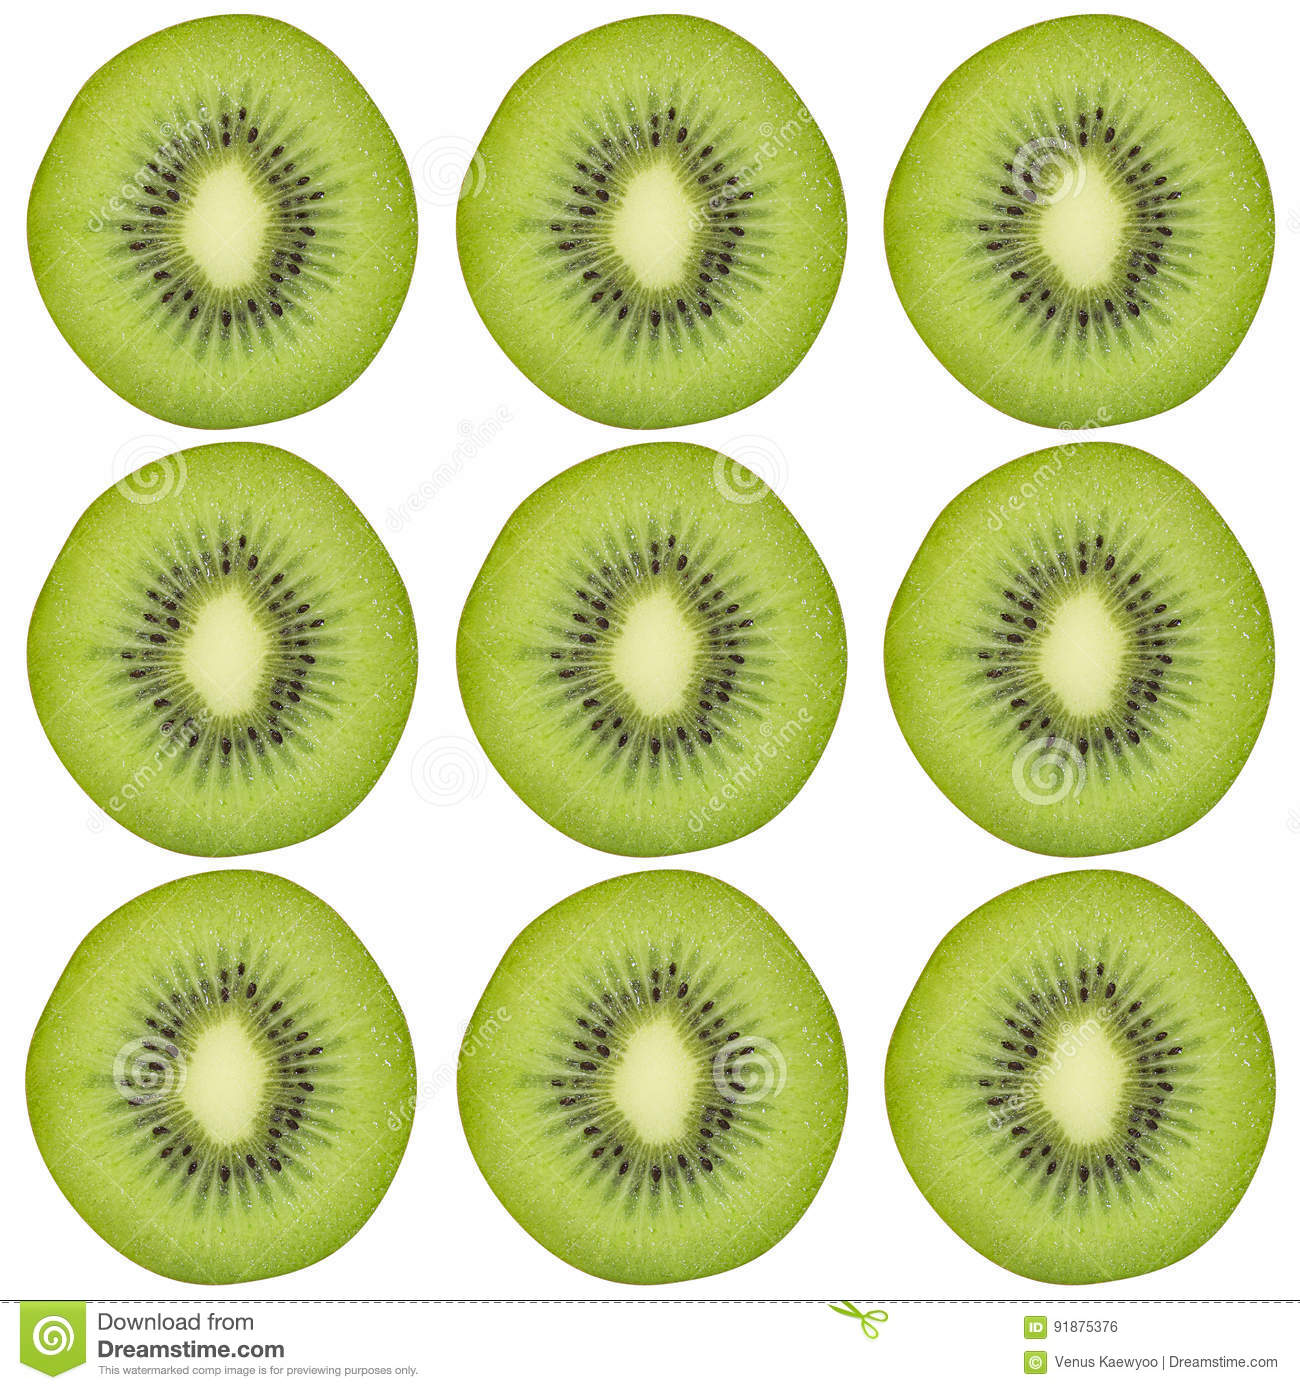 Sliced kiwi fruit pattern background